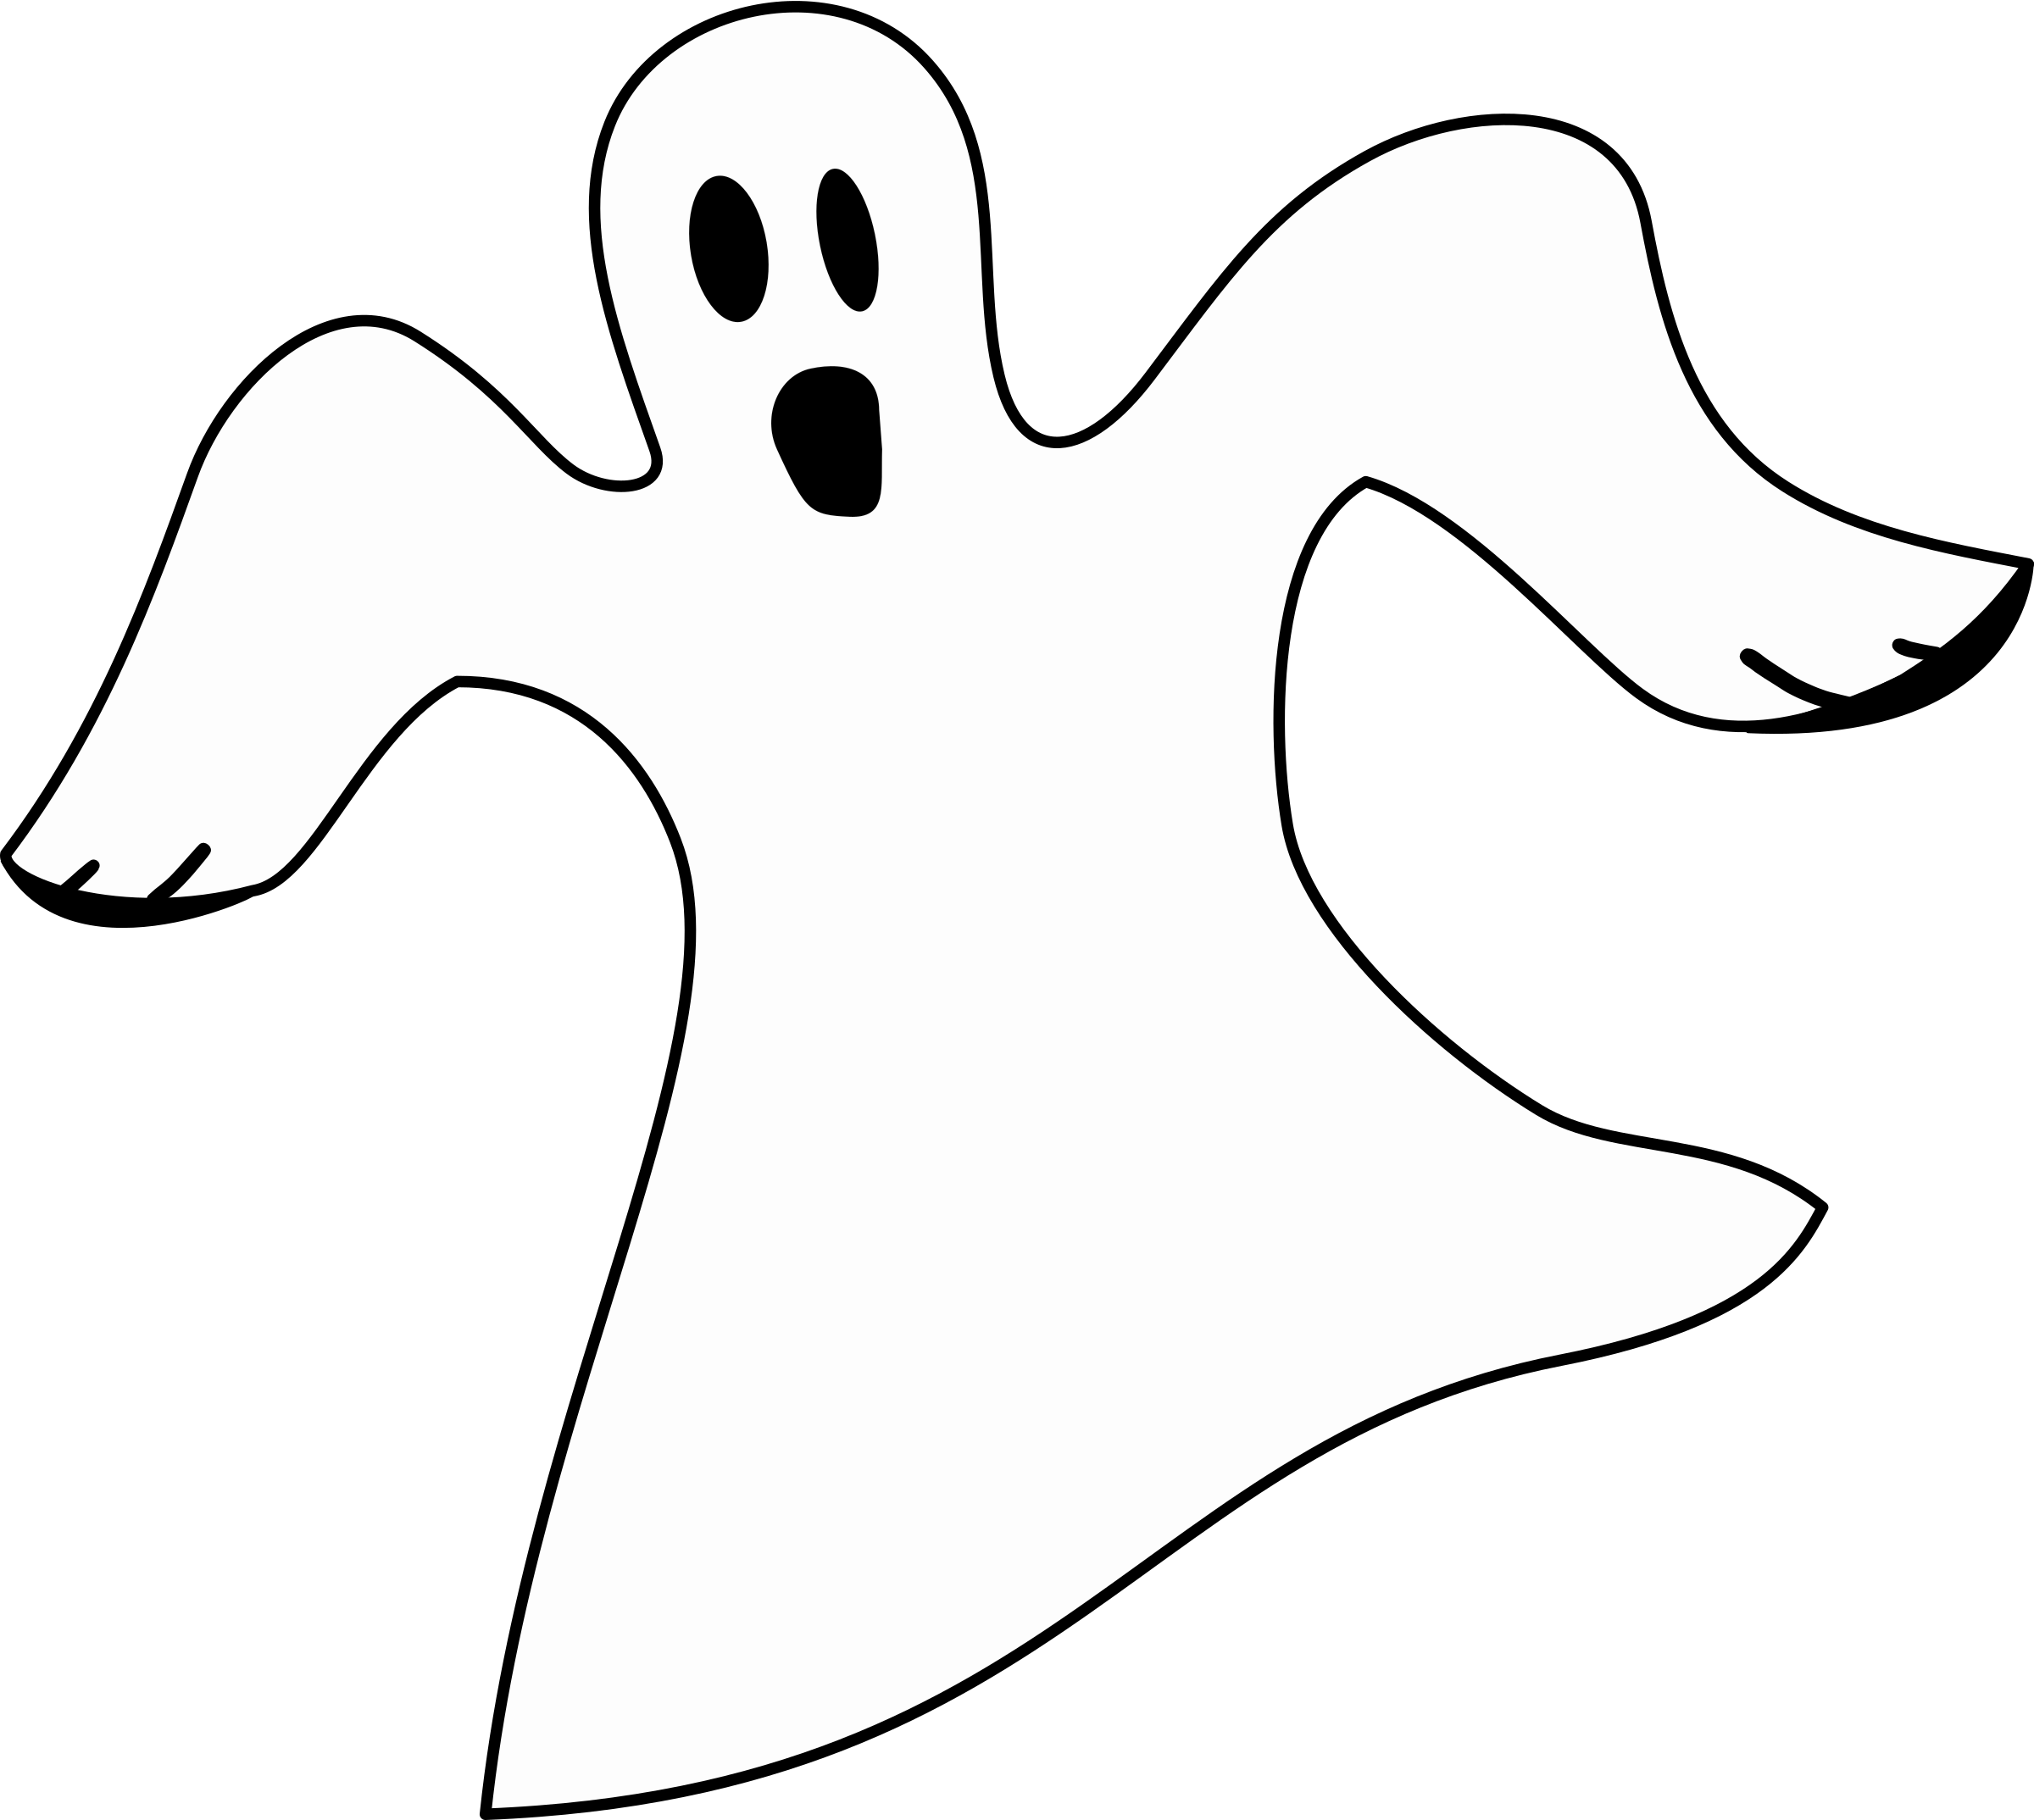 Collection of simple. Ghost clipart white lady ghost clip freeuse library